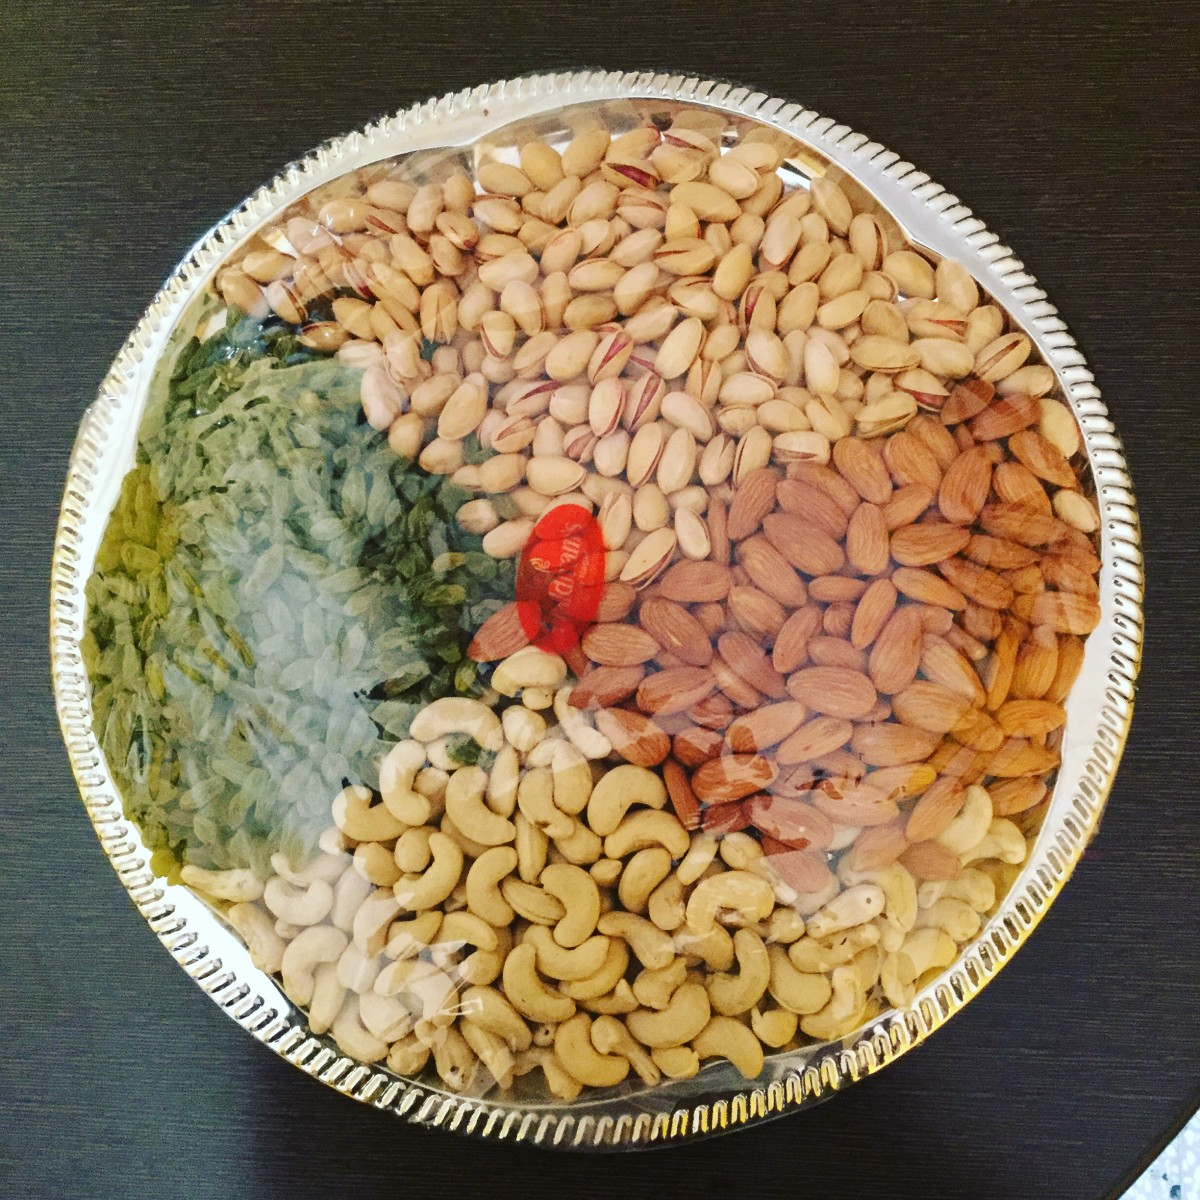 Dry fruits and nuts are the most popular gifts on Diwali